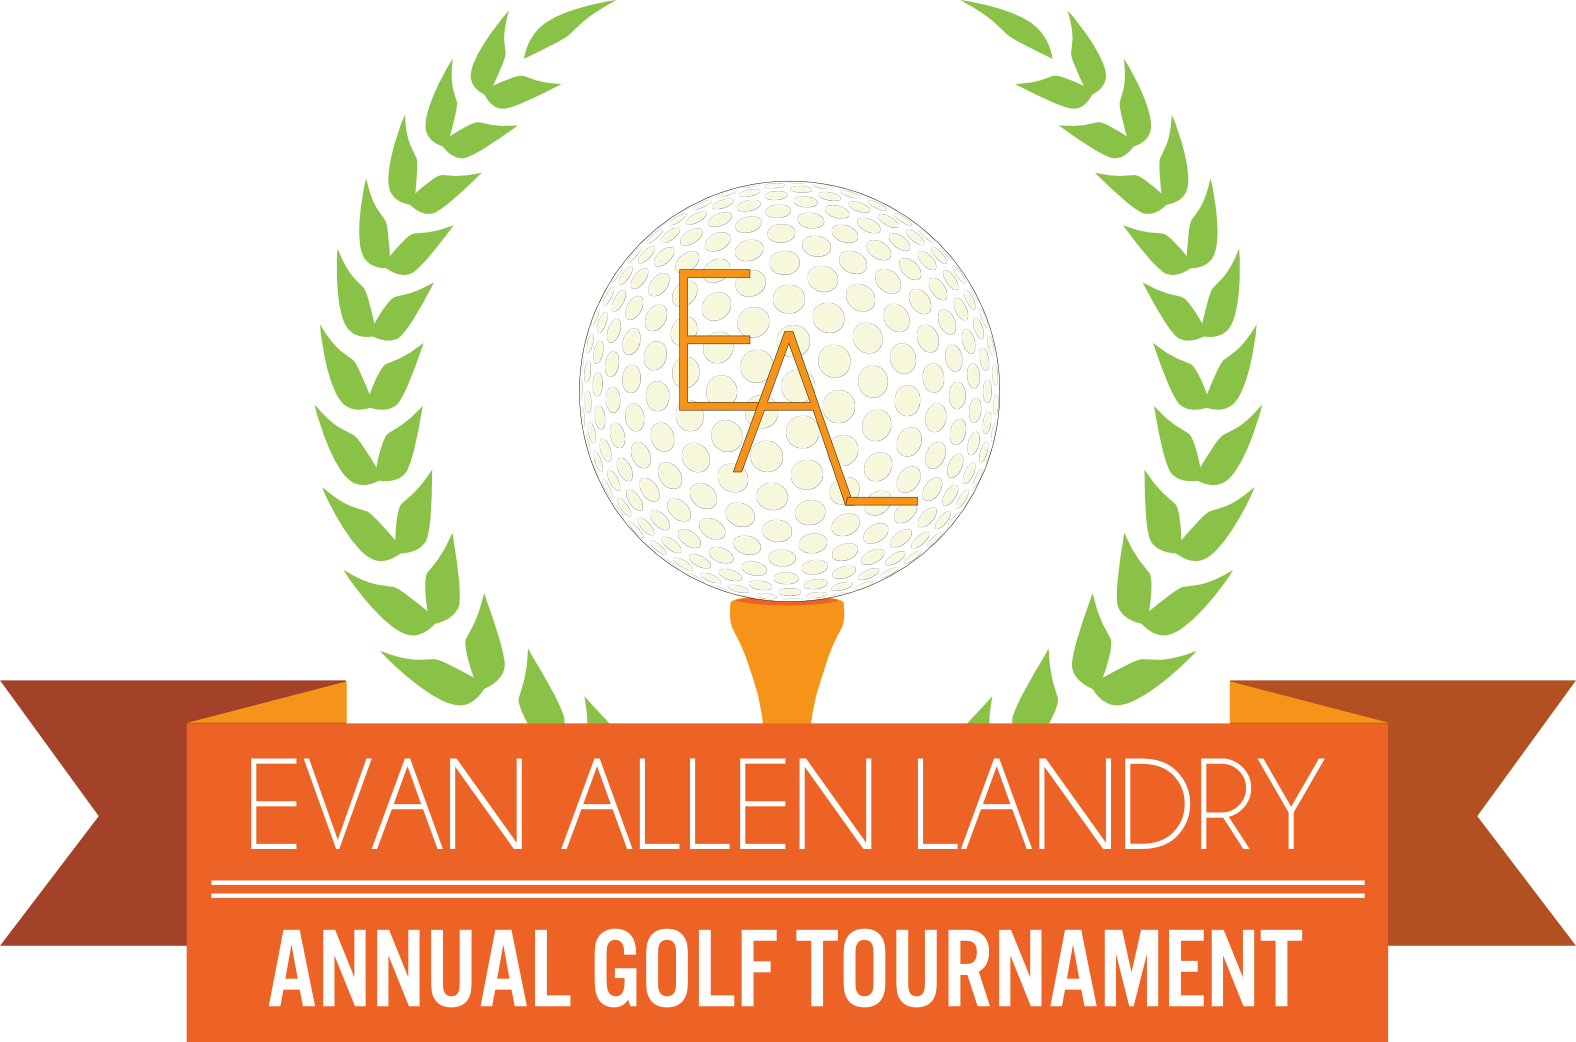 Evan Allen Landry 7th Annual Golf Tournament - 2020